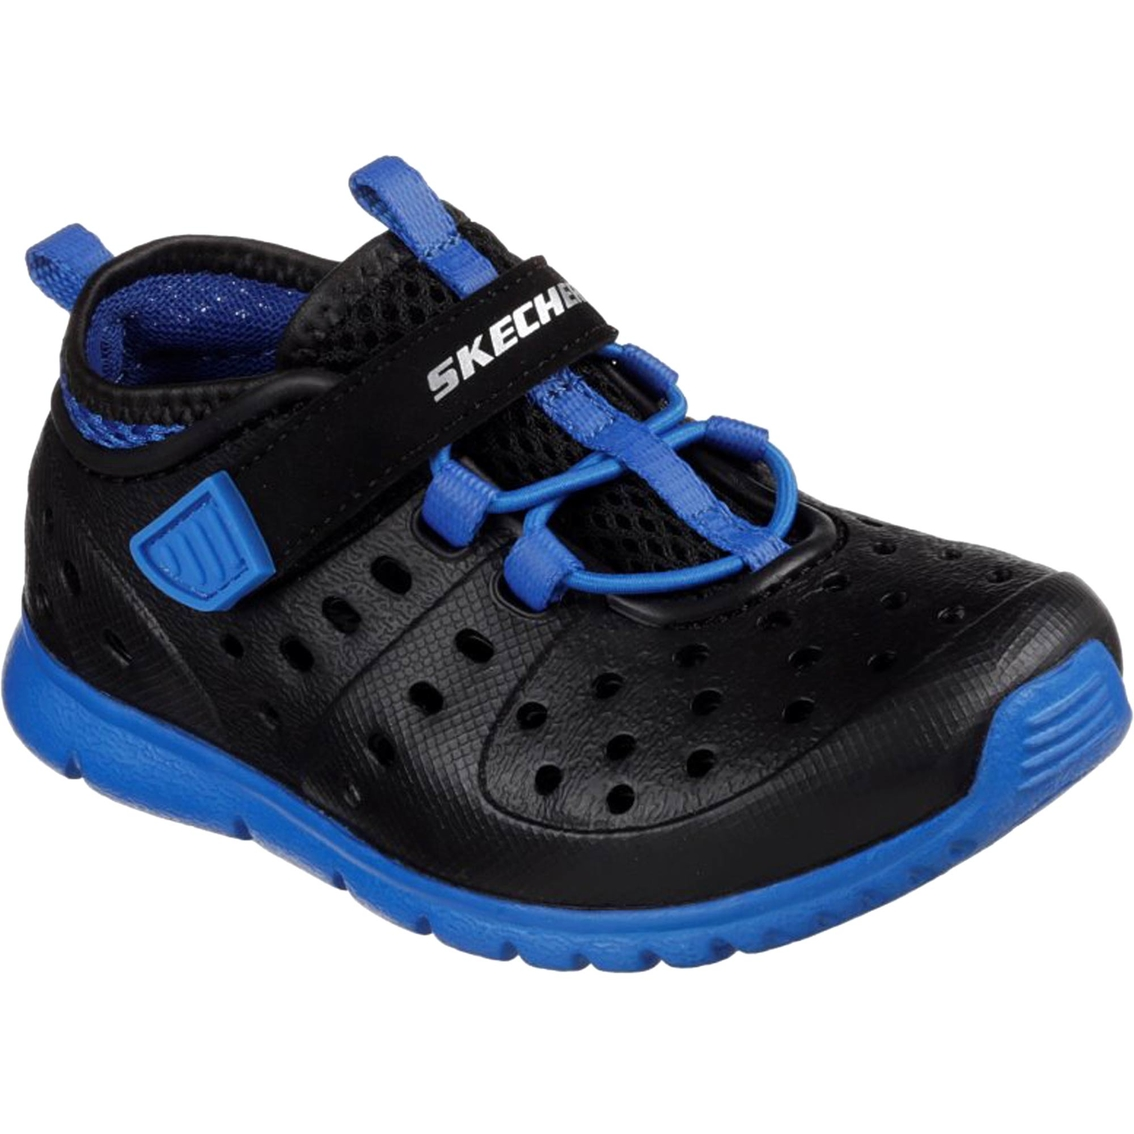 2a76d77fd364 Skechers Boys Hydrozooms Strap Water Sandals